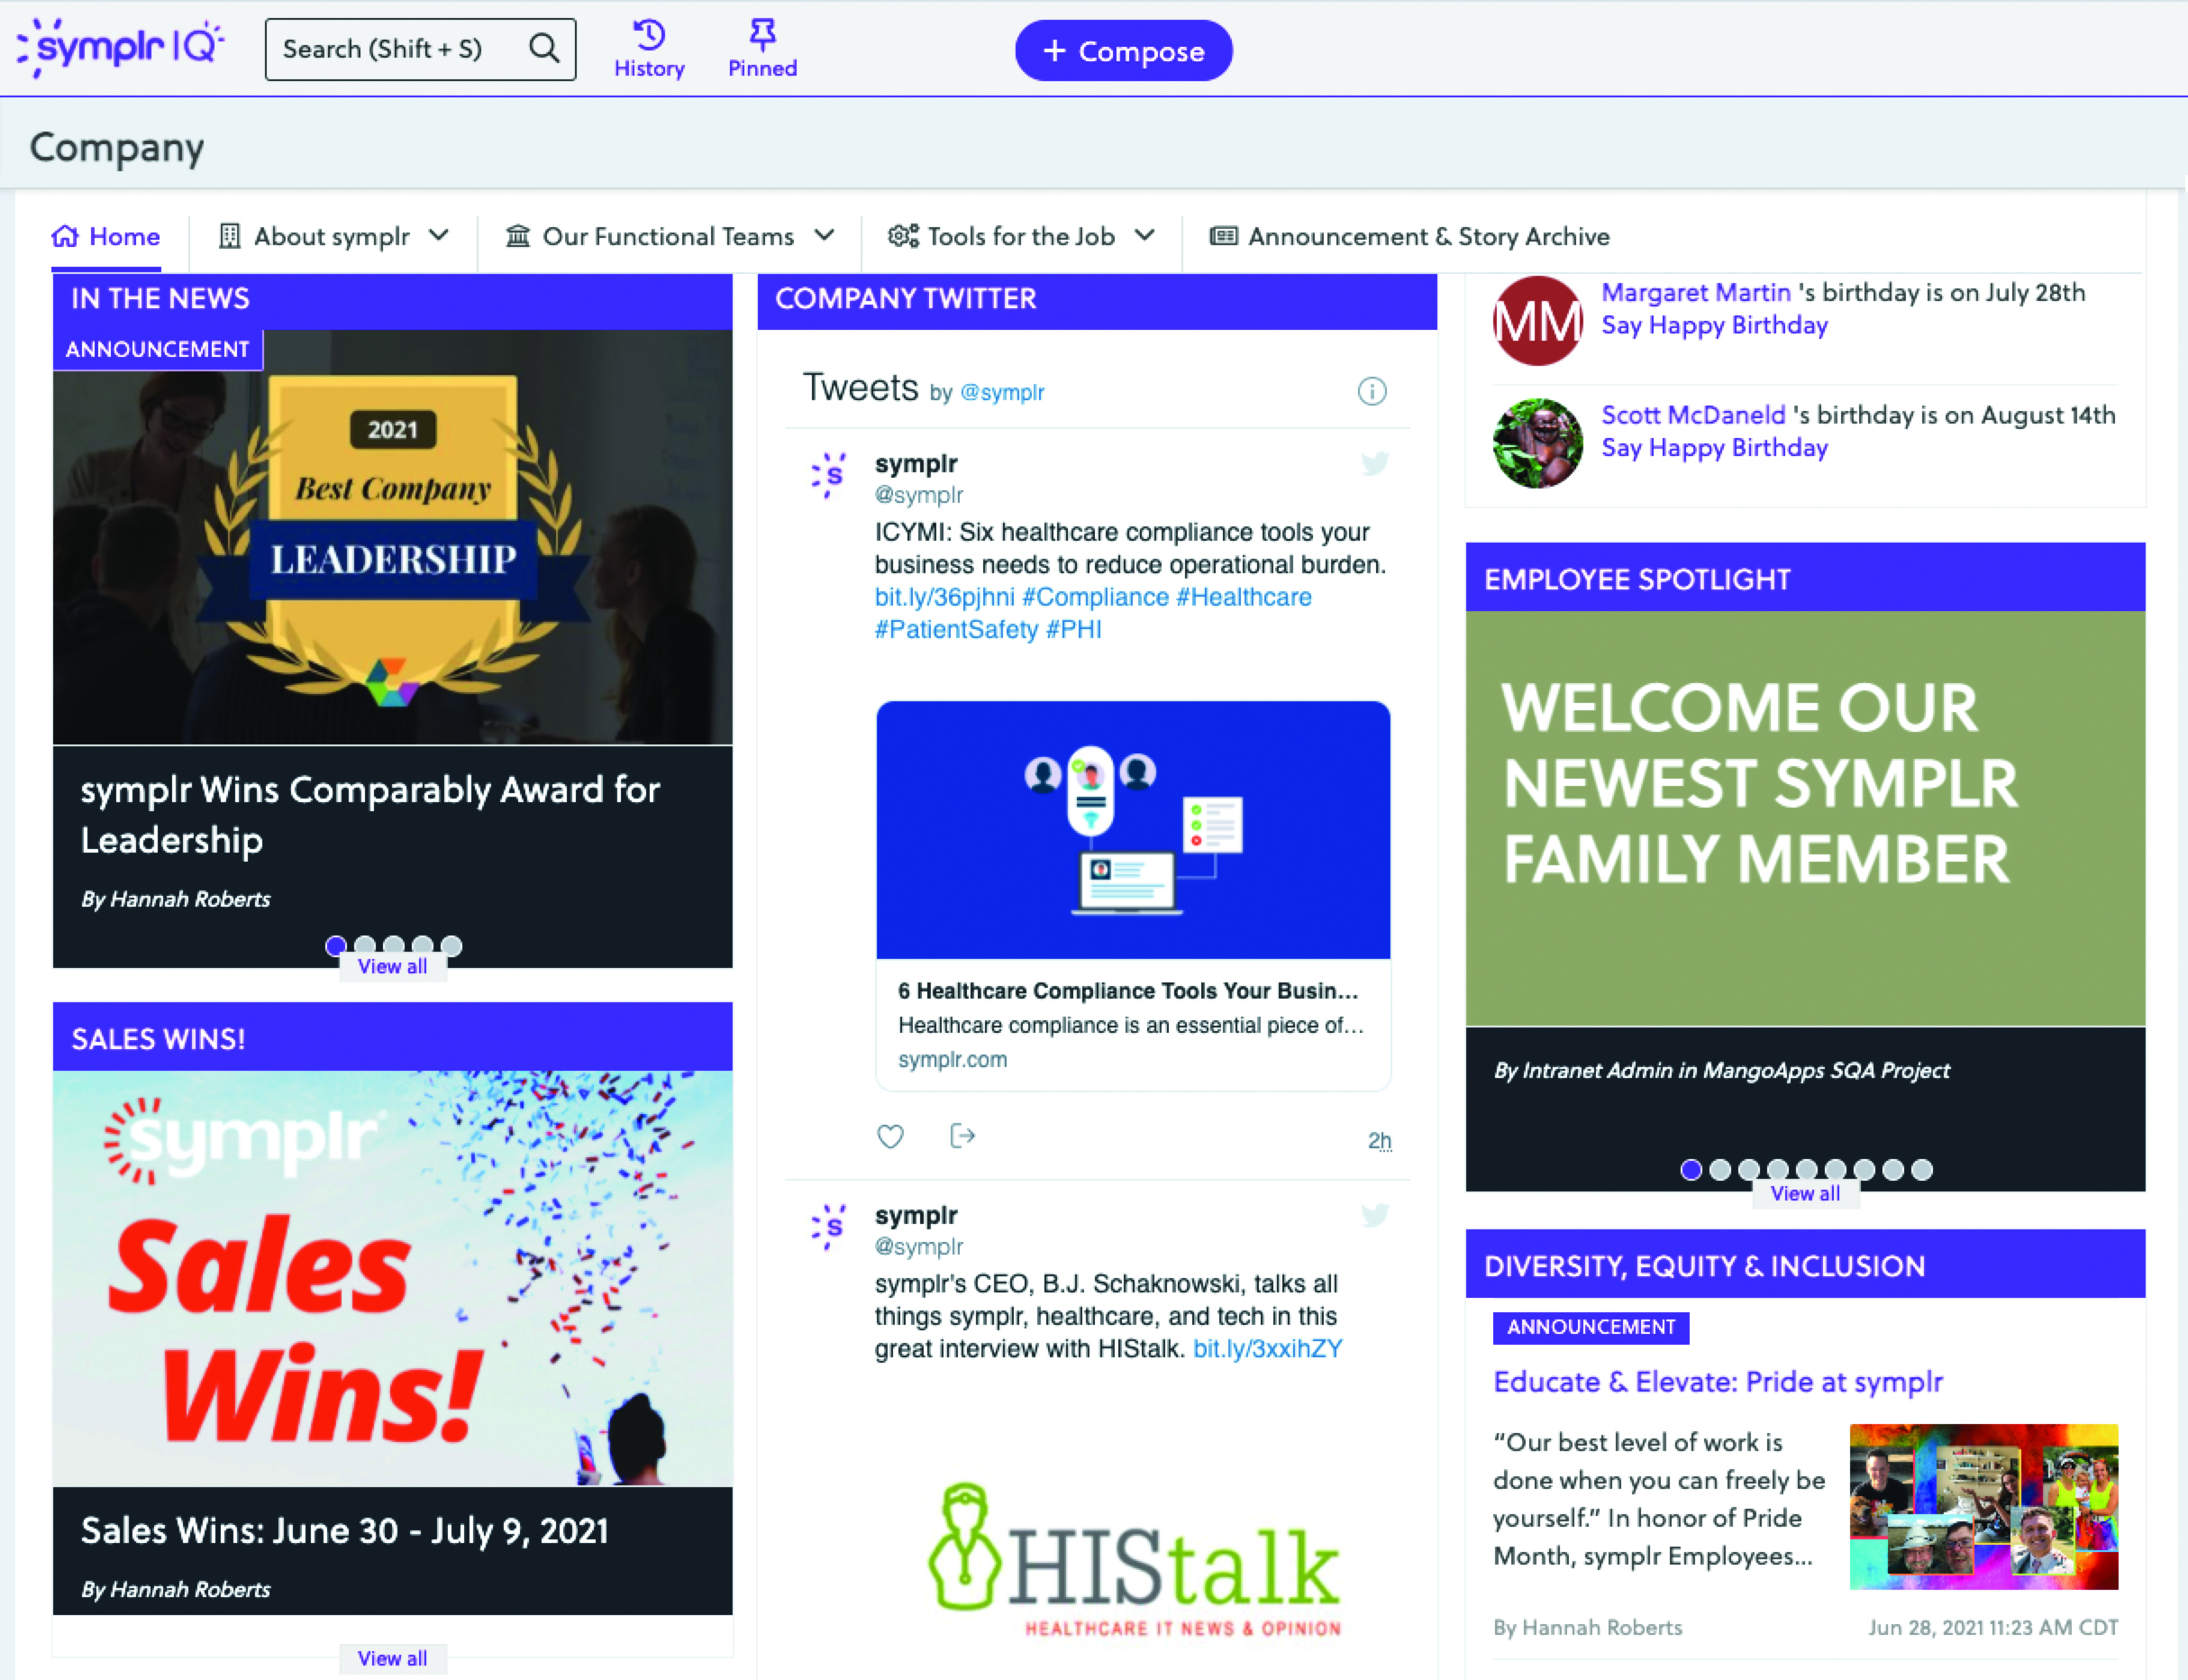 symplr's intranet home page and news feed